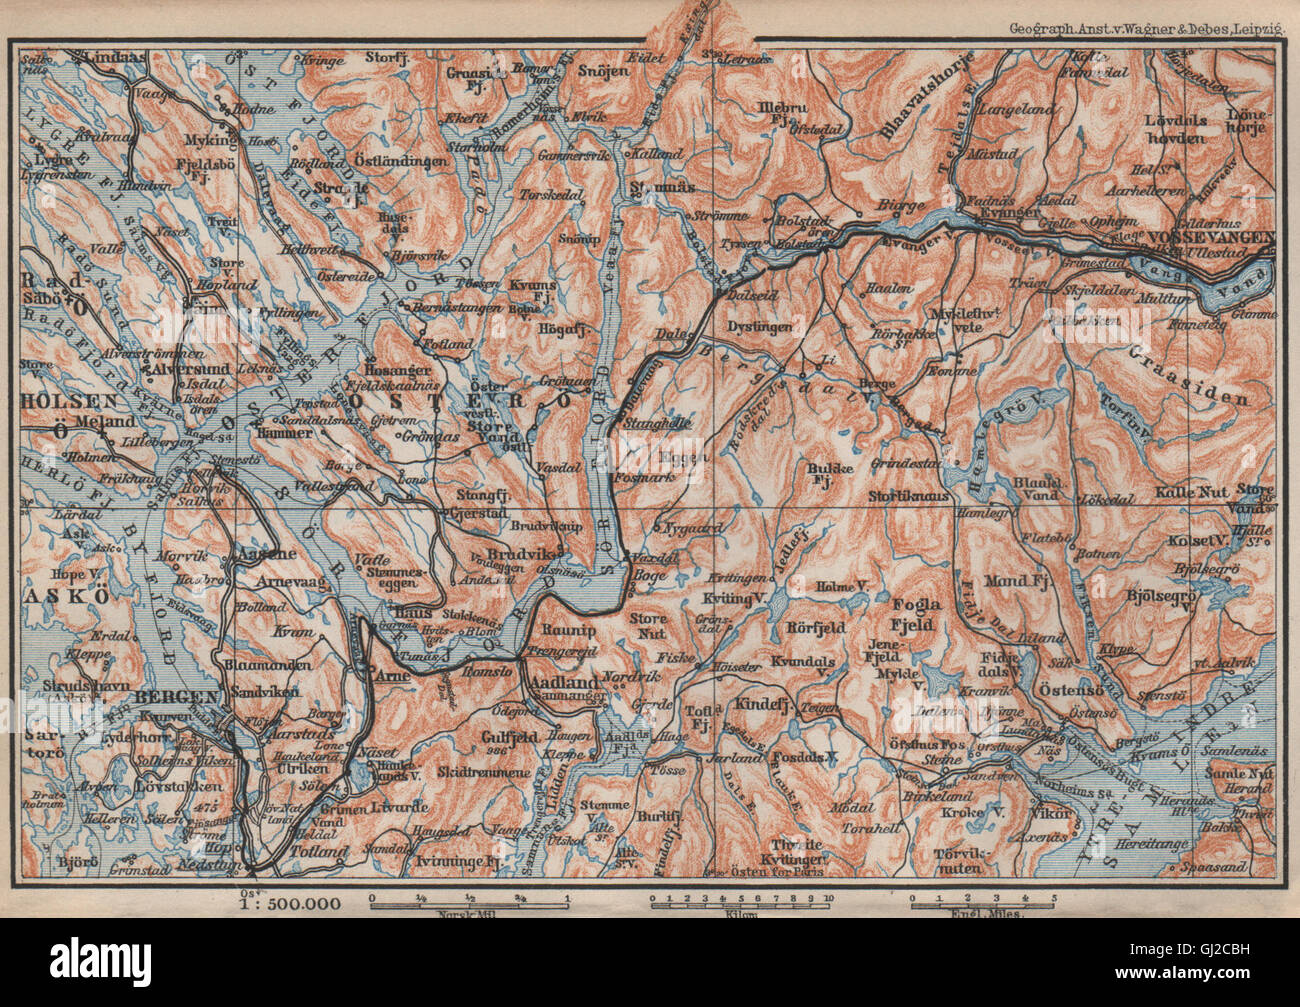 Karta Syd Norge.Map Norway Sweden 1899 Stock Photos Map Norway Sweden 1899 Stock